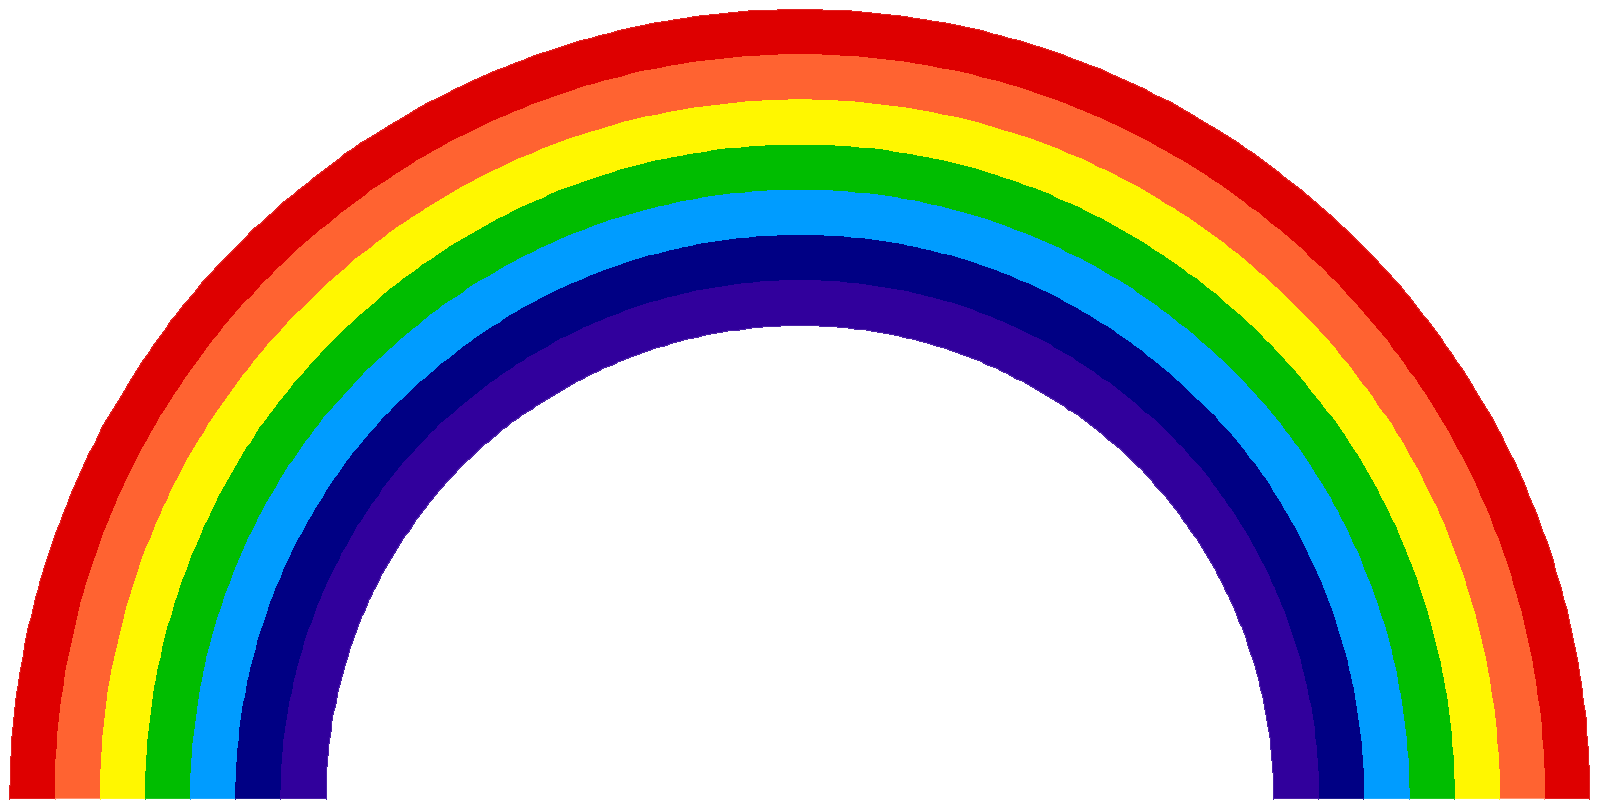 Rainbow transparent png. Images all